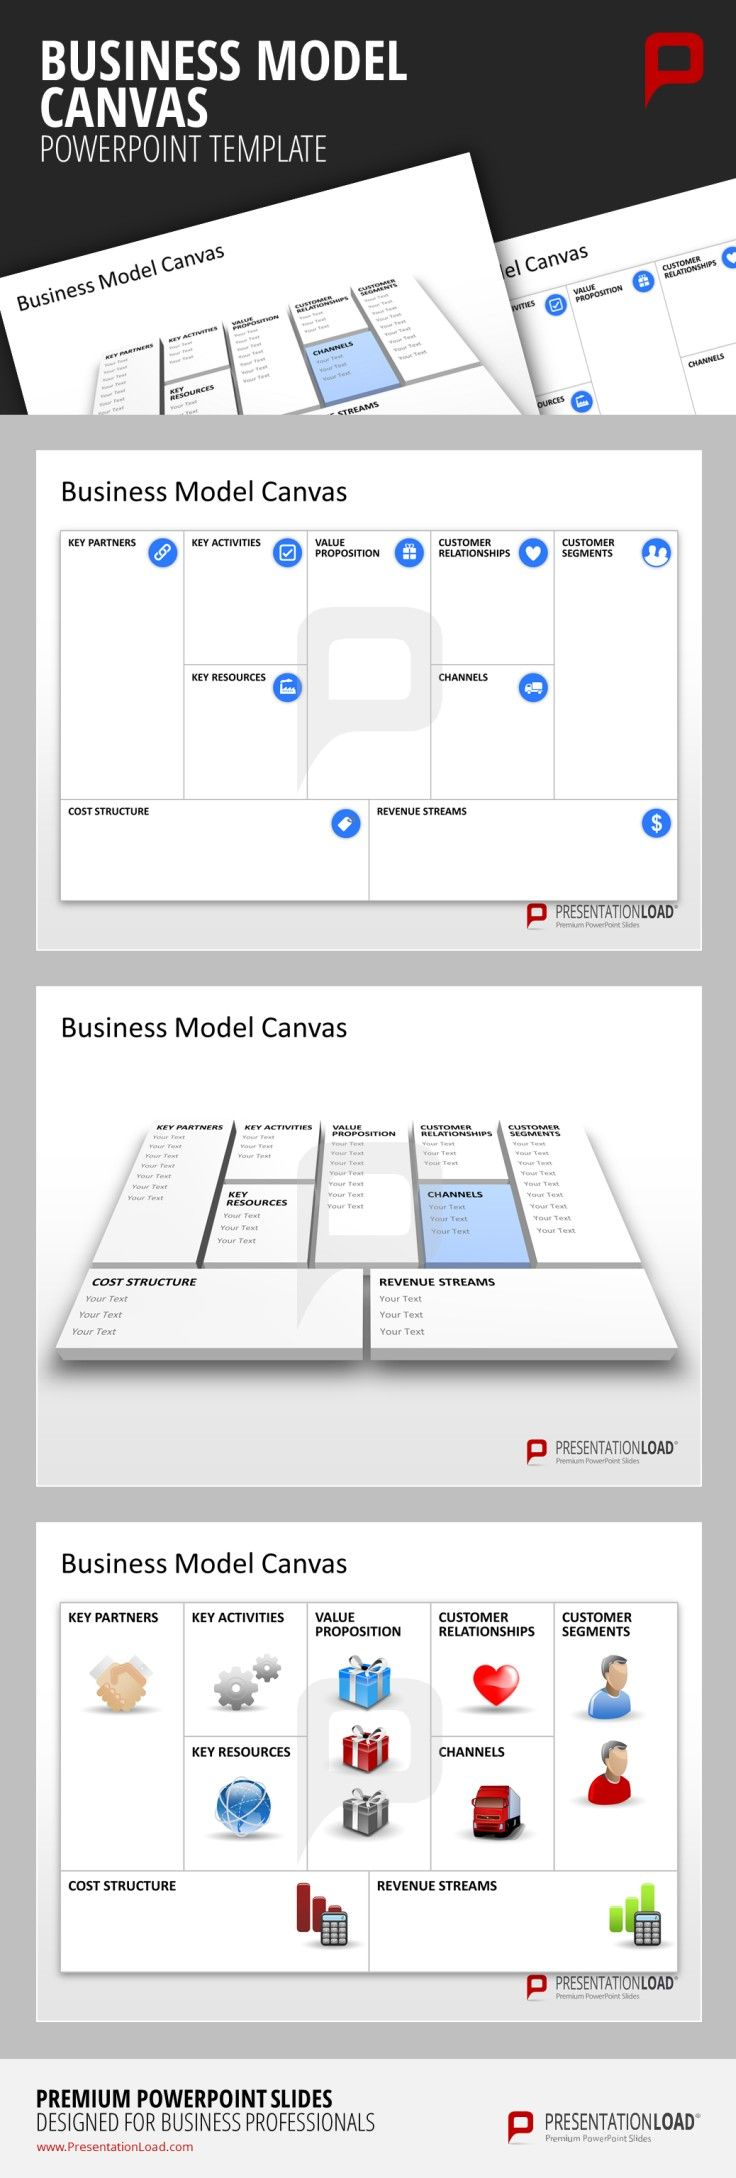 Business Model Canvas PowerPoint Template Start with your Business Model ideas today and work through your personal Business Model Canvas directly in PowerPoint.  #presentationload www.presentationl...